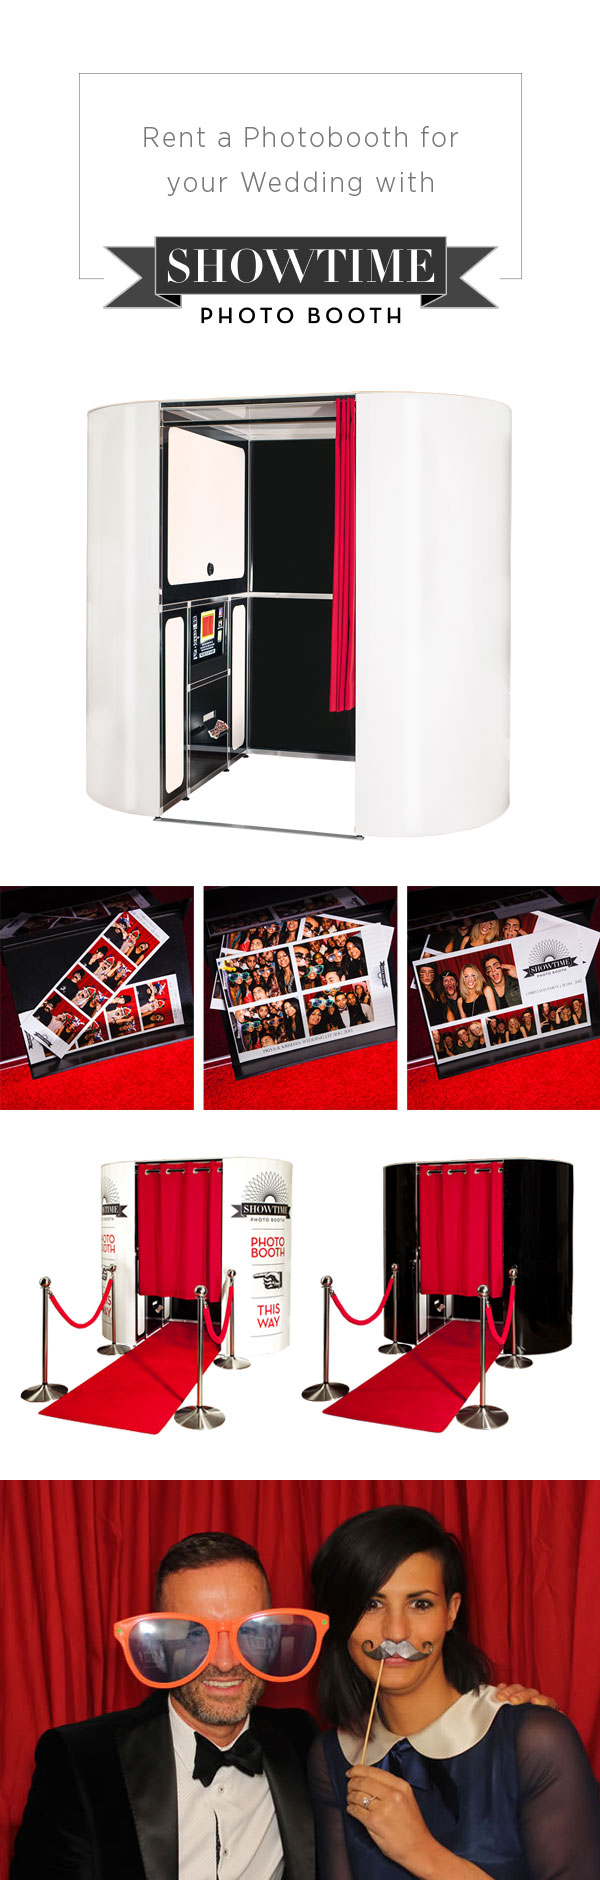 Rent a Photo Booth from Showtime Photo Booth